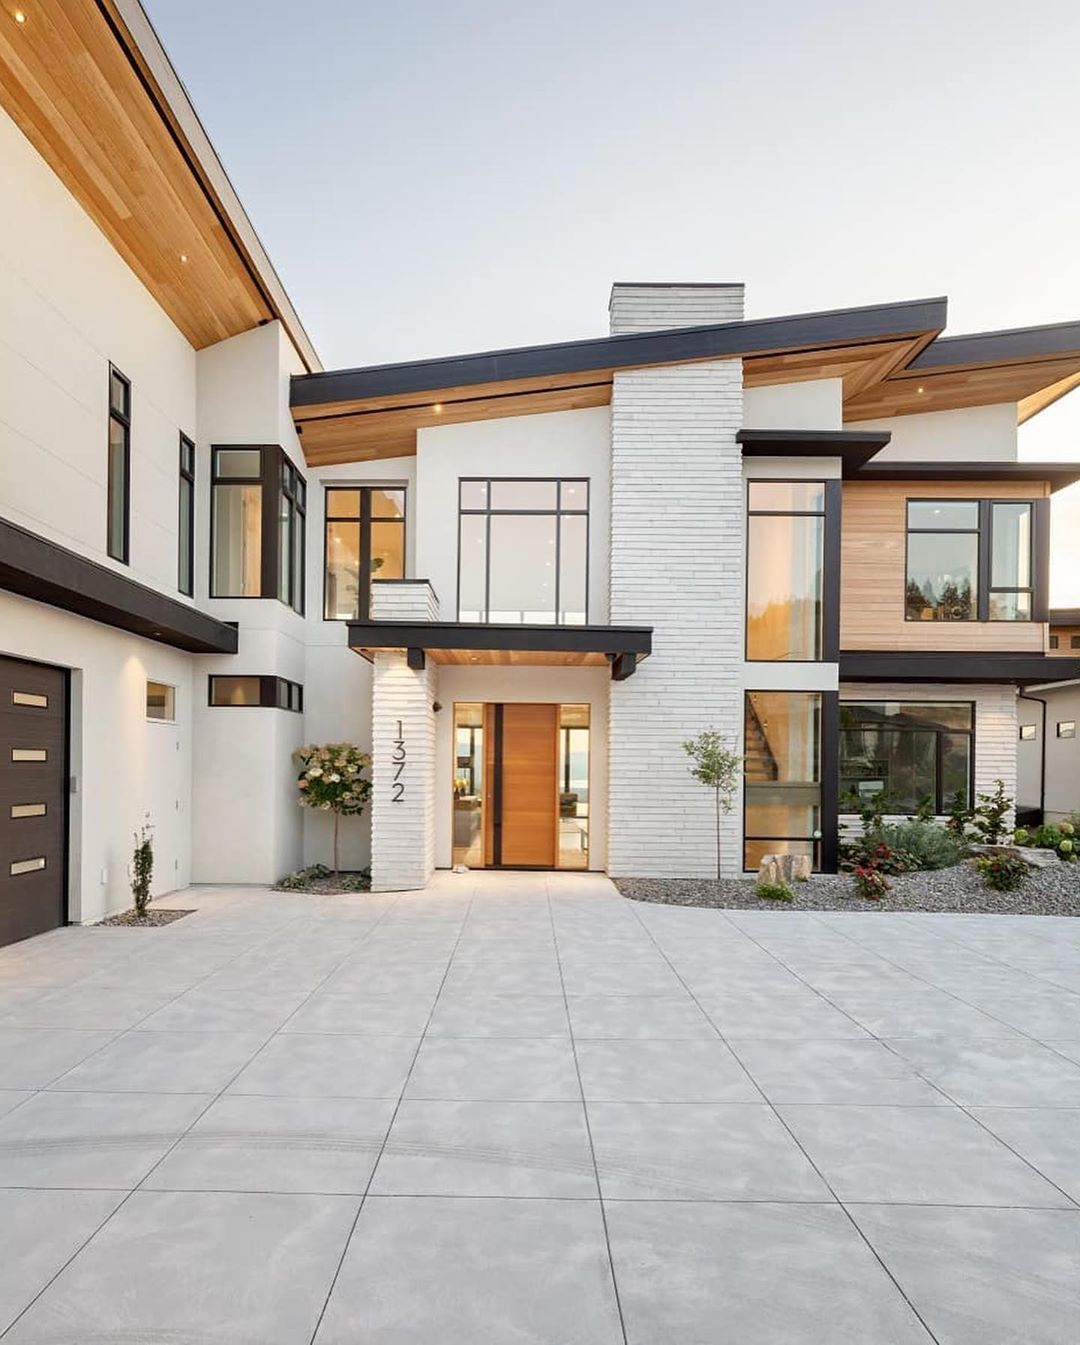 Yes Or No On This Modern Build This One Is Pretty Awesome Loving The Elevation And Modern Lines Bu In 2020 House Styles House Exterior Dream House Decor